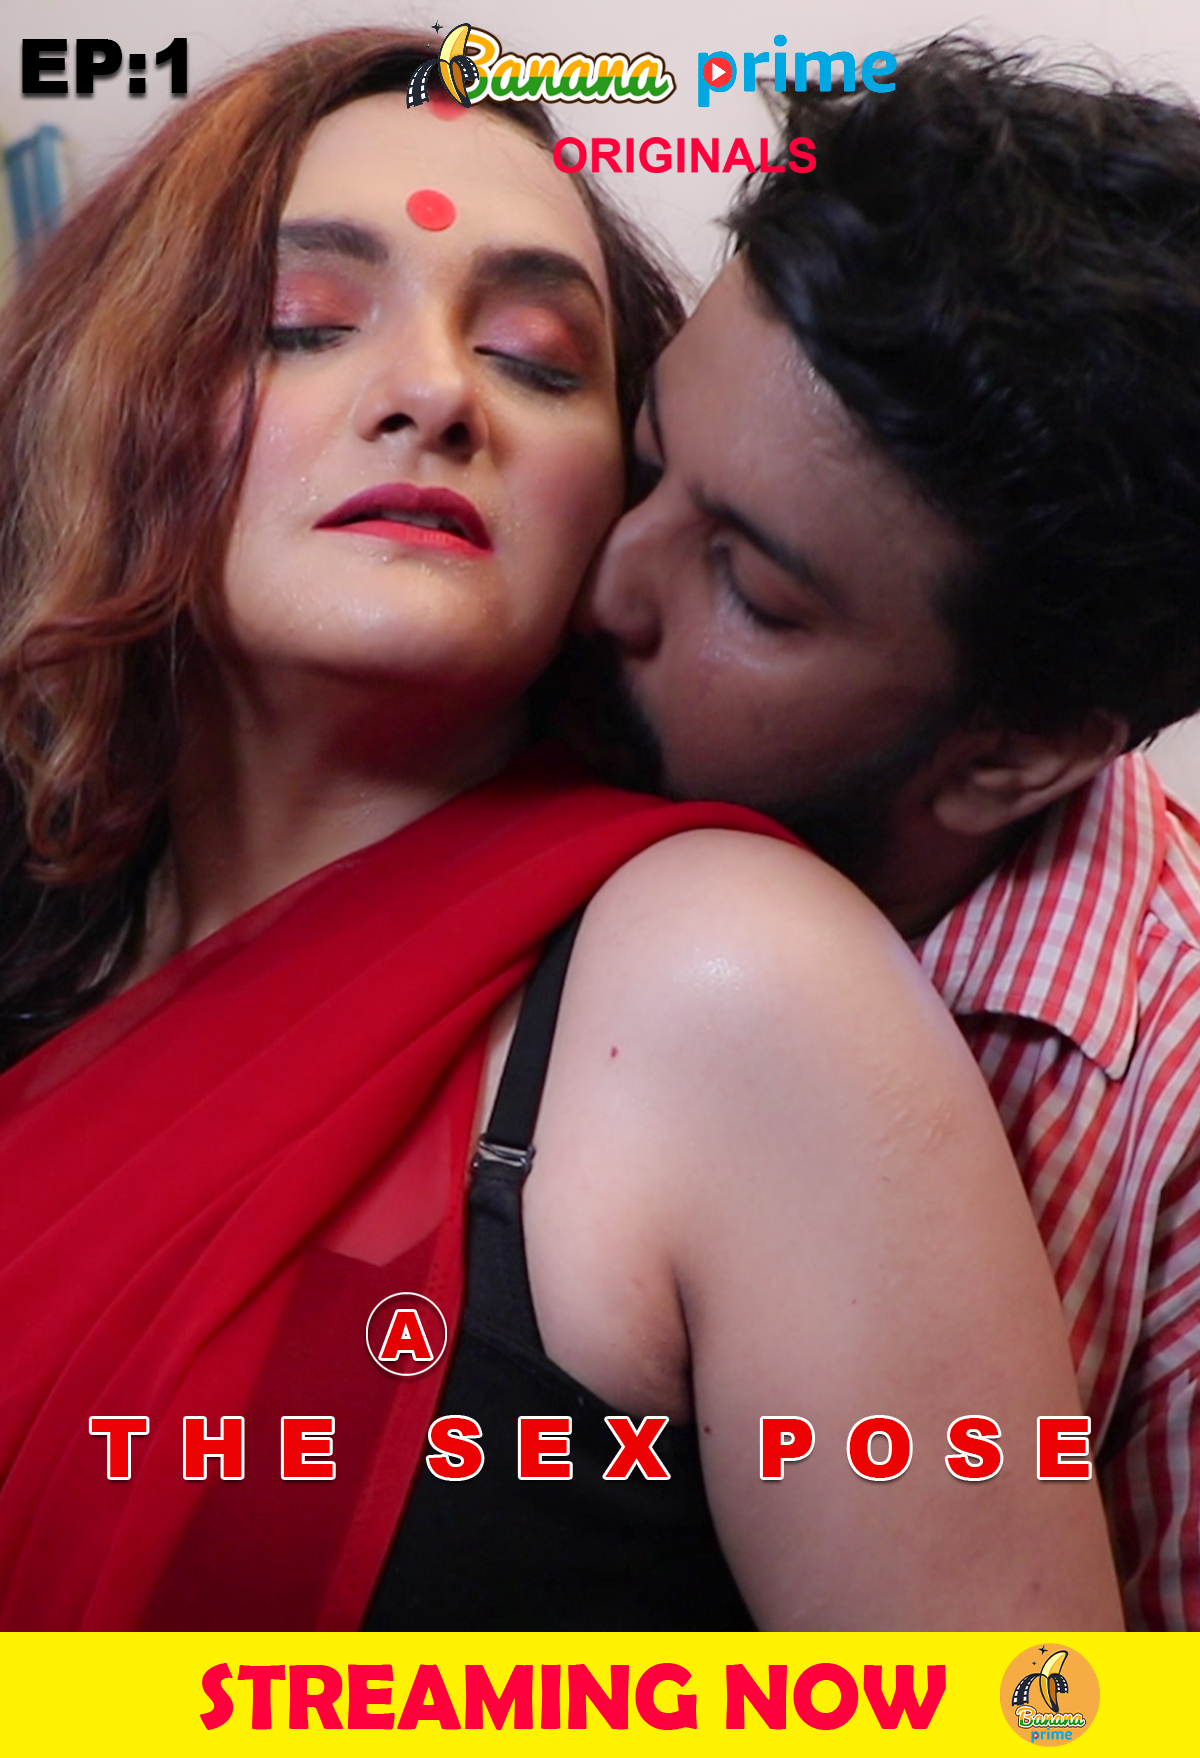 The Sex Pose (2020) S01E01 Bengali Bananaprime Web Series 720p HDRip 100MB